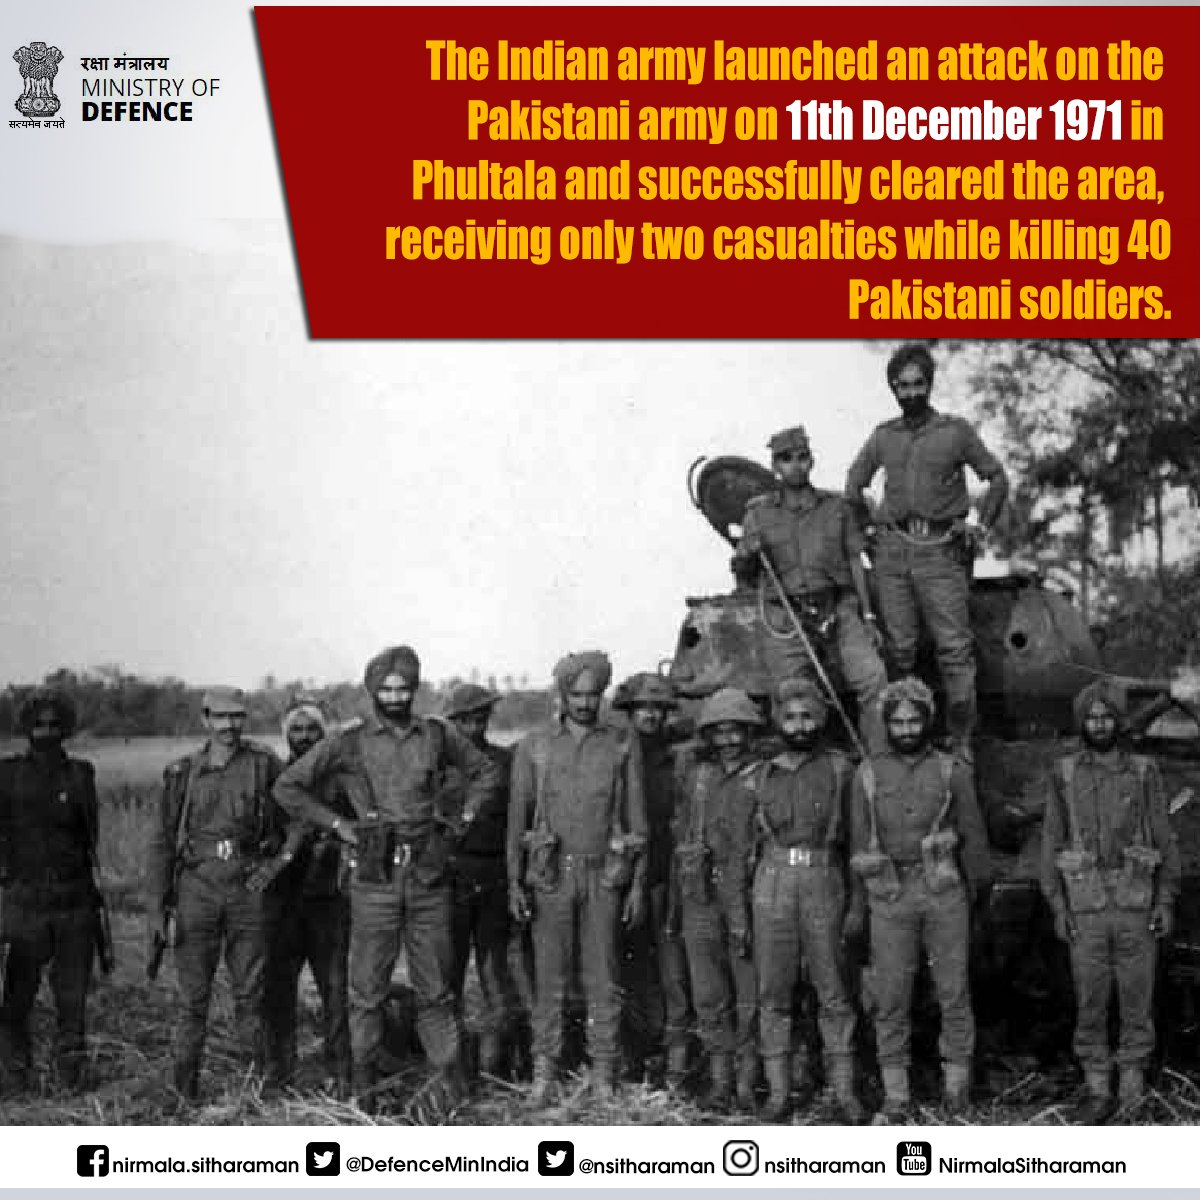 The jawans of the Indian Army fought without any regard for their own lives and didnt stop until they had made the Pakistani forces drop their weapons. Let us honour their martyrdom and courage on #VijayDiwas tomorrow.